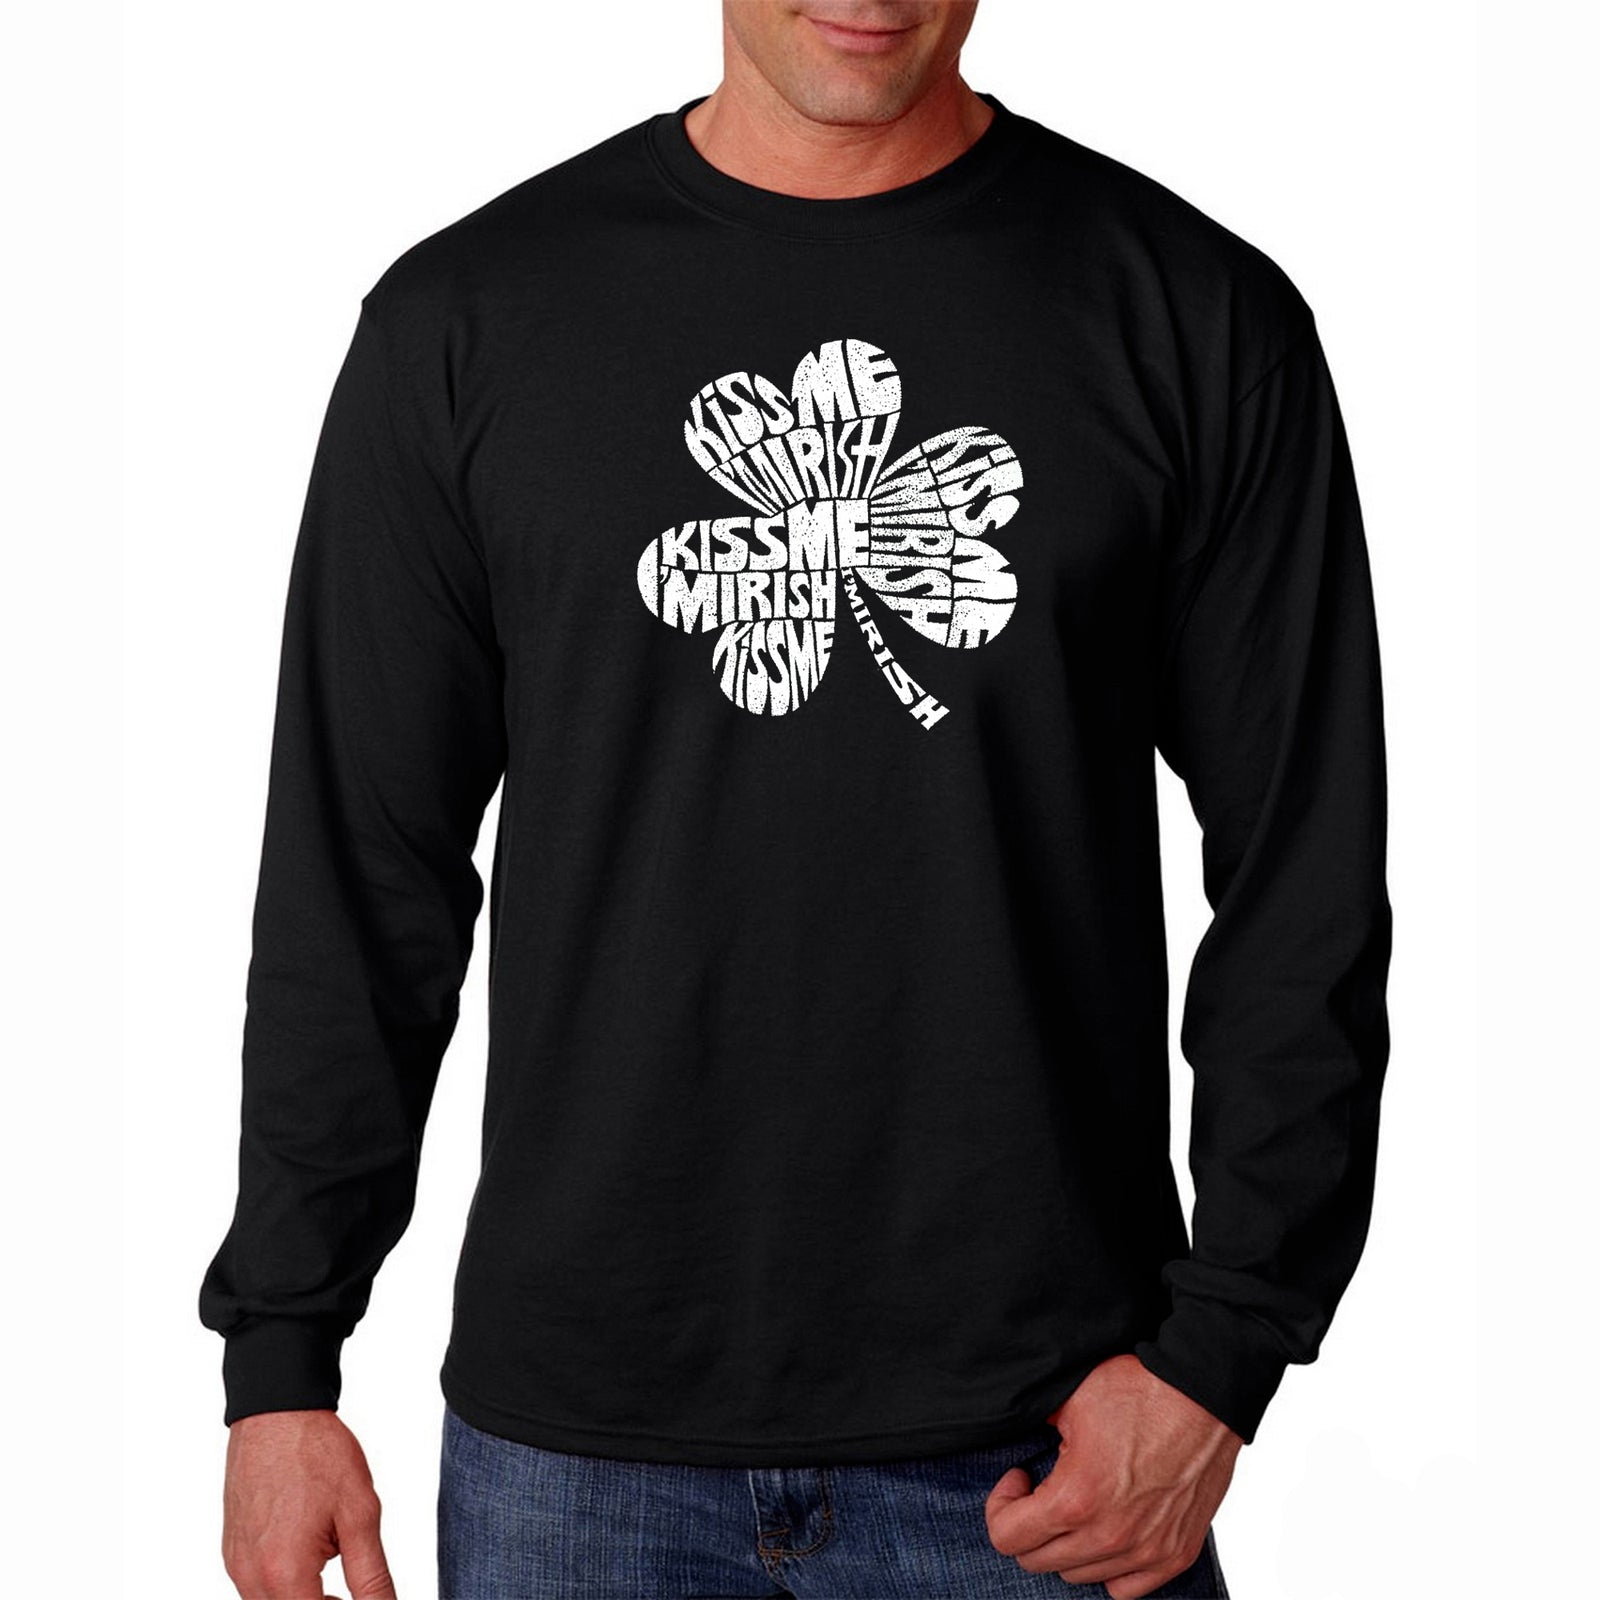 Men's Long Sleeve T-shirt - KISS ME I'M IRISH